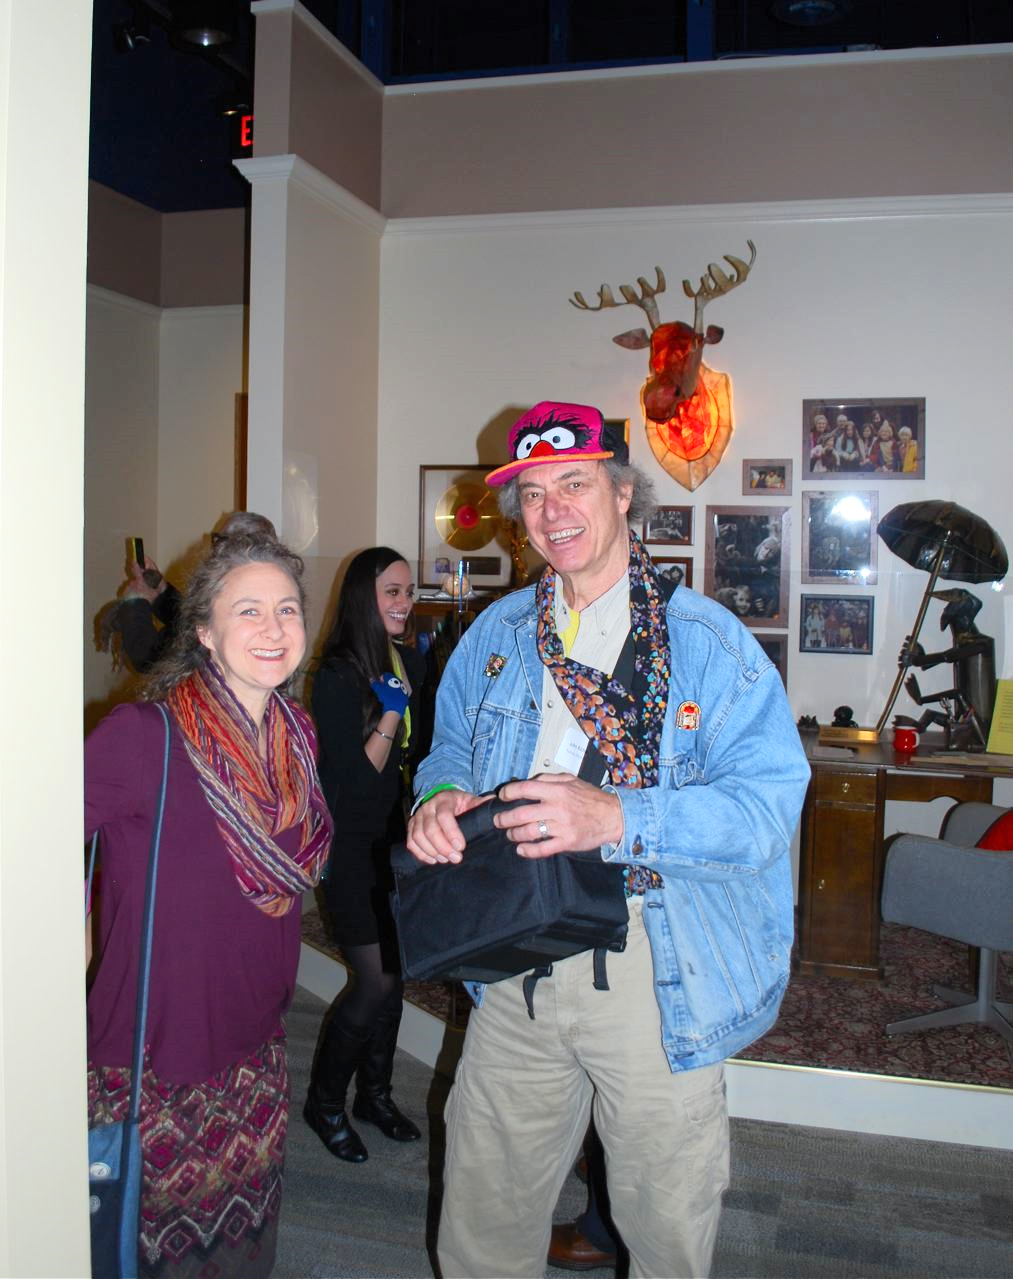 John with Heather Henson in front the re-creation of Jim Henson's office in the Henson Gallery at the Center for Puppetry Arts in Atlanta, GA.  John's moose head was bought by Jim Henson in 1965 in NYC.